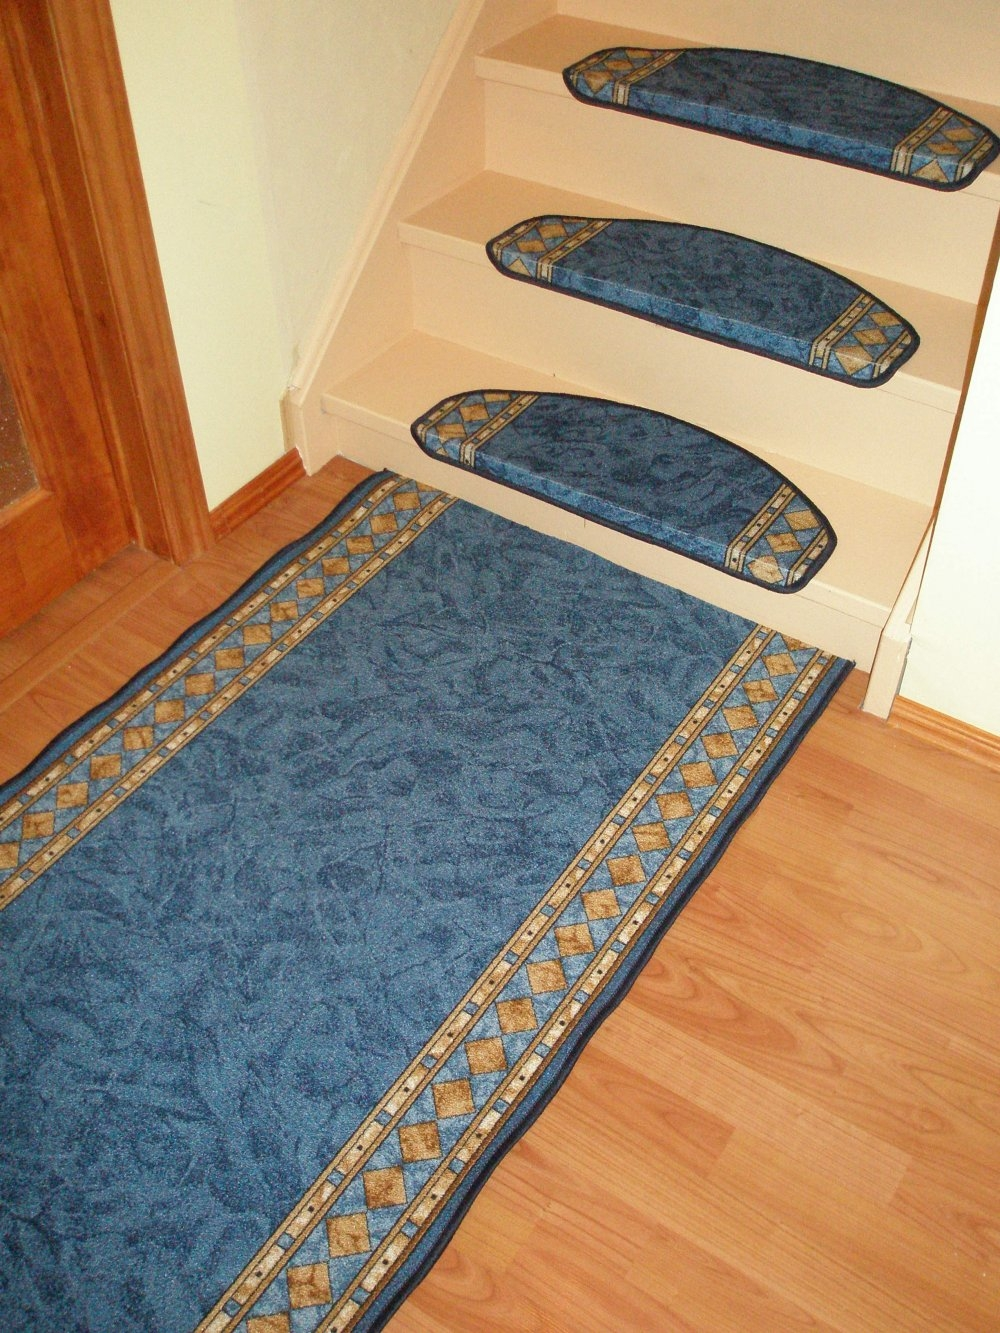 Carpet Stair Treads Stair Mats Stair Rugs Inside Stair Tread Rugs For Dogs (View 20 of 20)